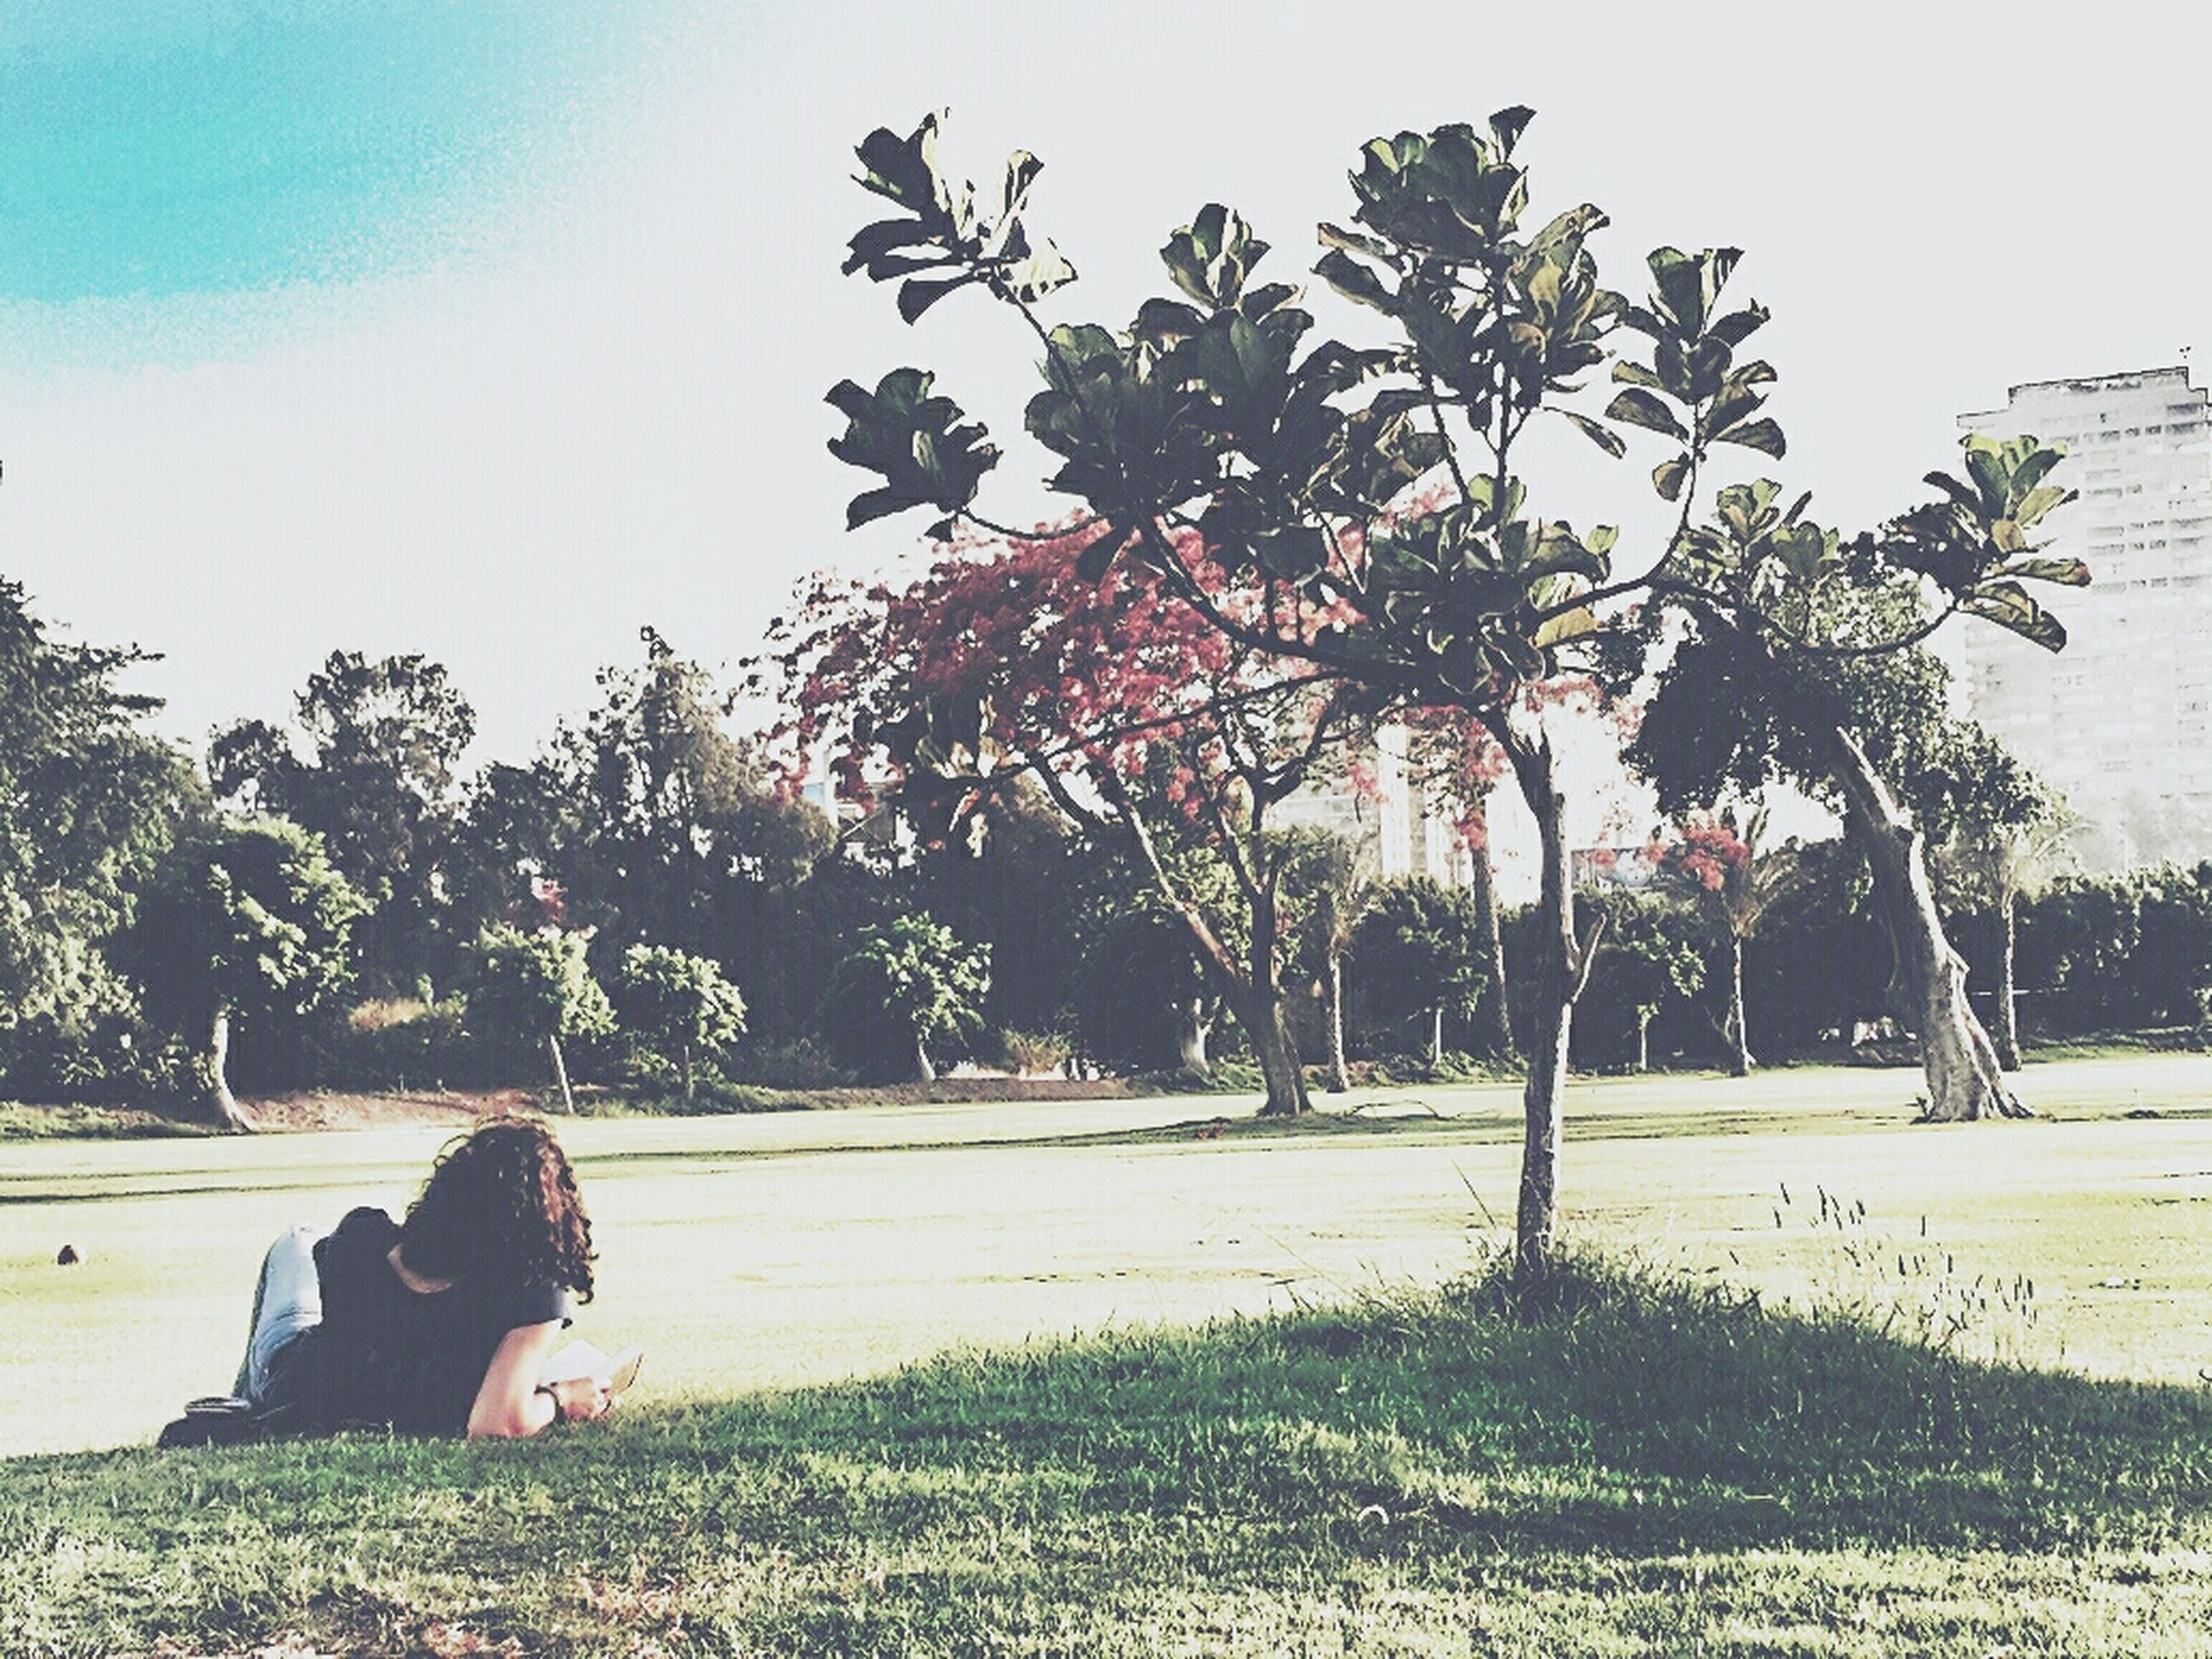 tree, growth, sky, park - man made space, tranquility, clear sky, bench, nature, sunlight, palm tree, shadow, day, absence, tree trunk, tranquil scene, outdoors, empty, branch, field, no people